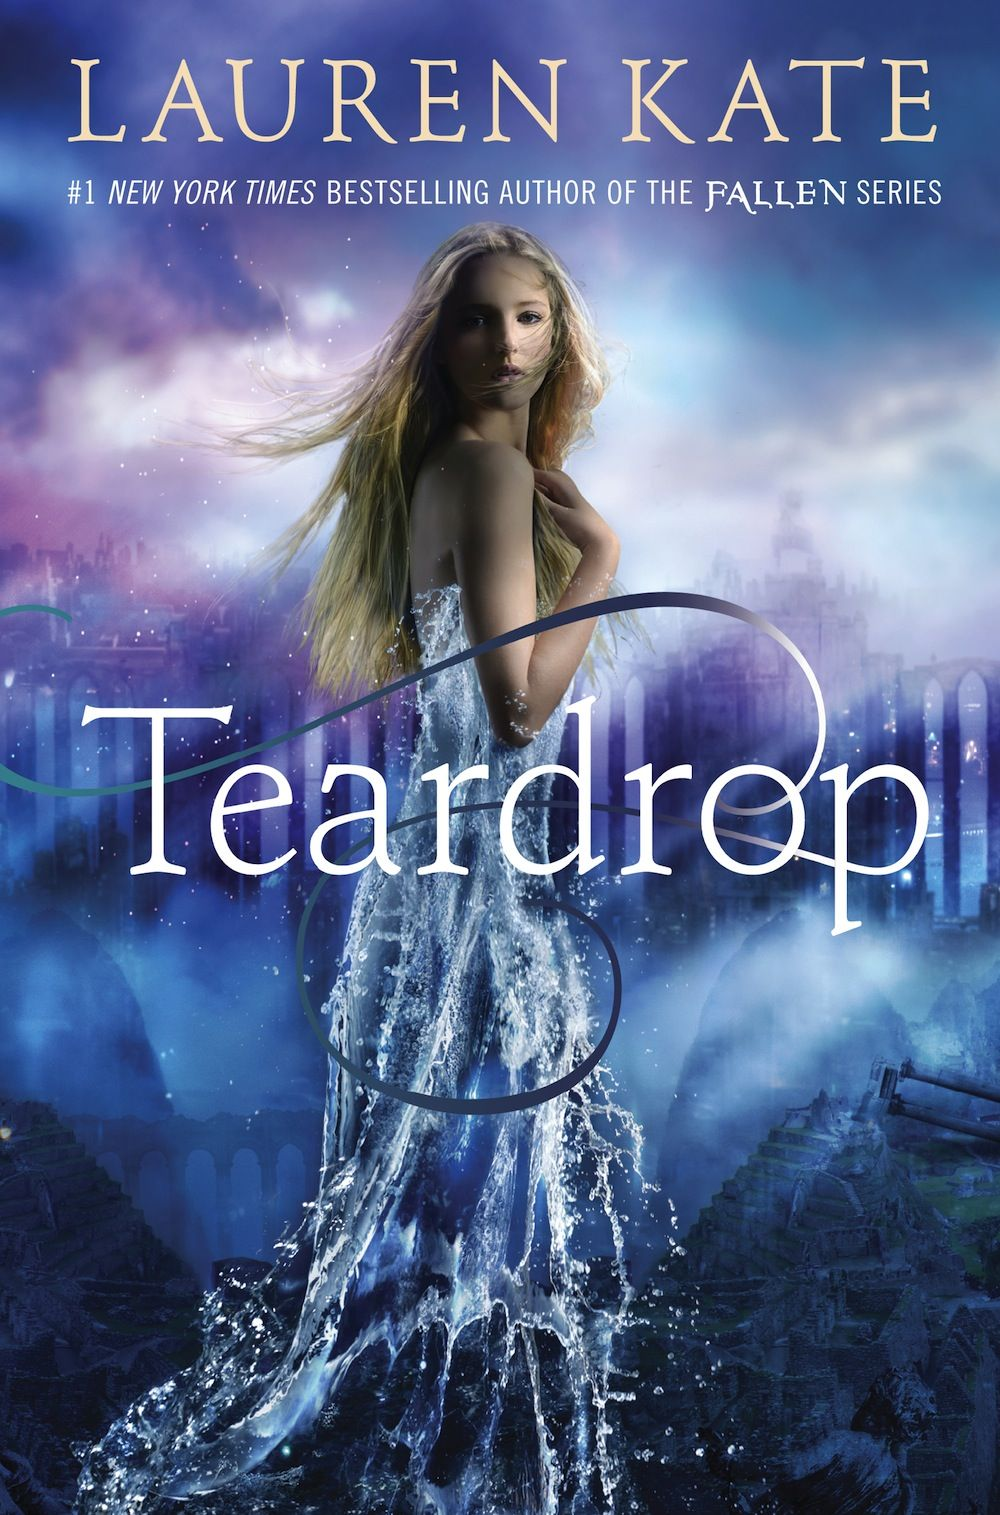 Teardrop, by Lauren Kate.  Author of the Fallen Series.  Just finished this earlier today and LOVED it!